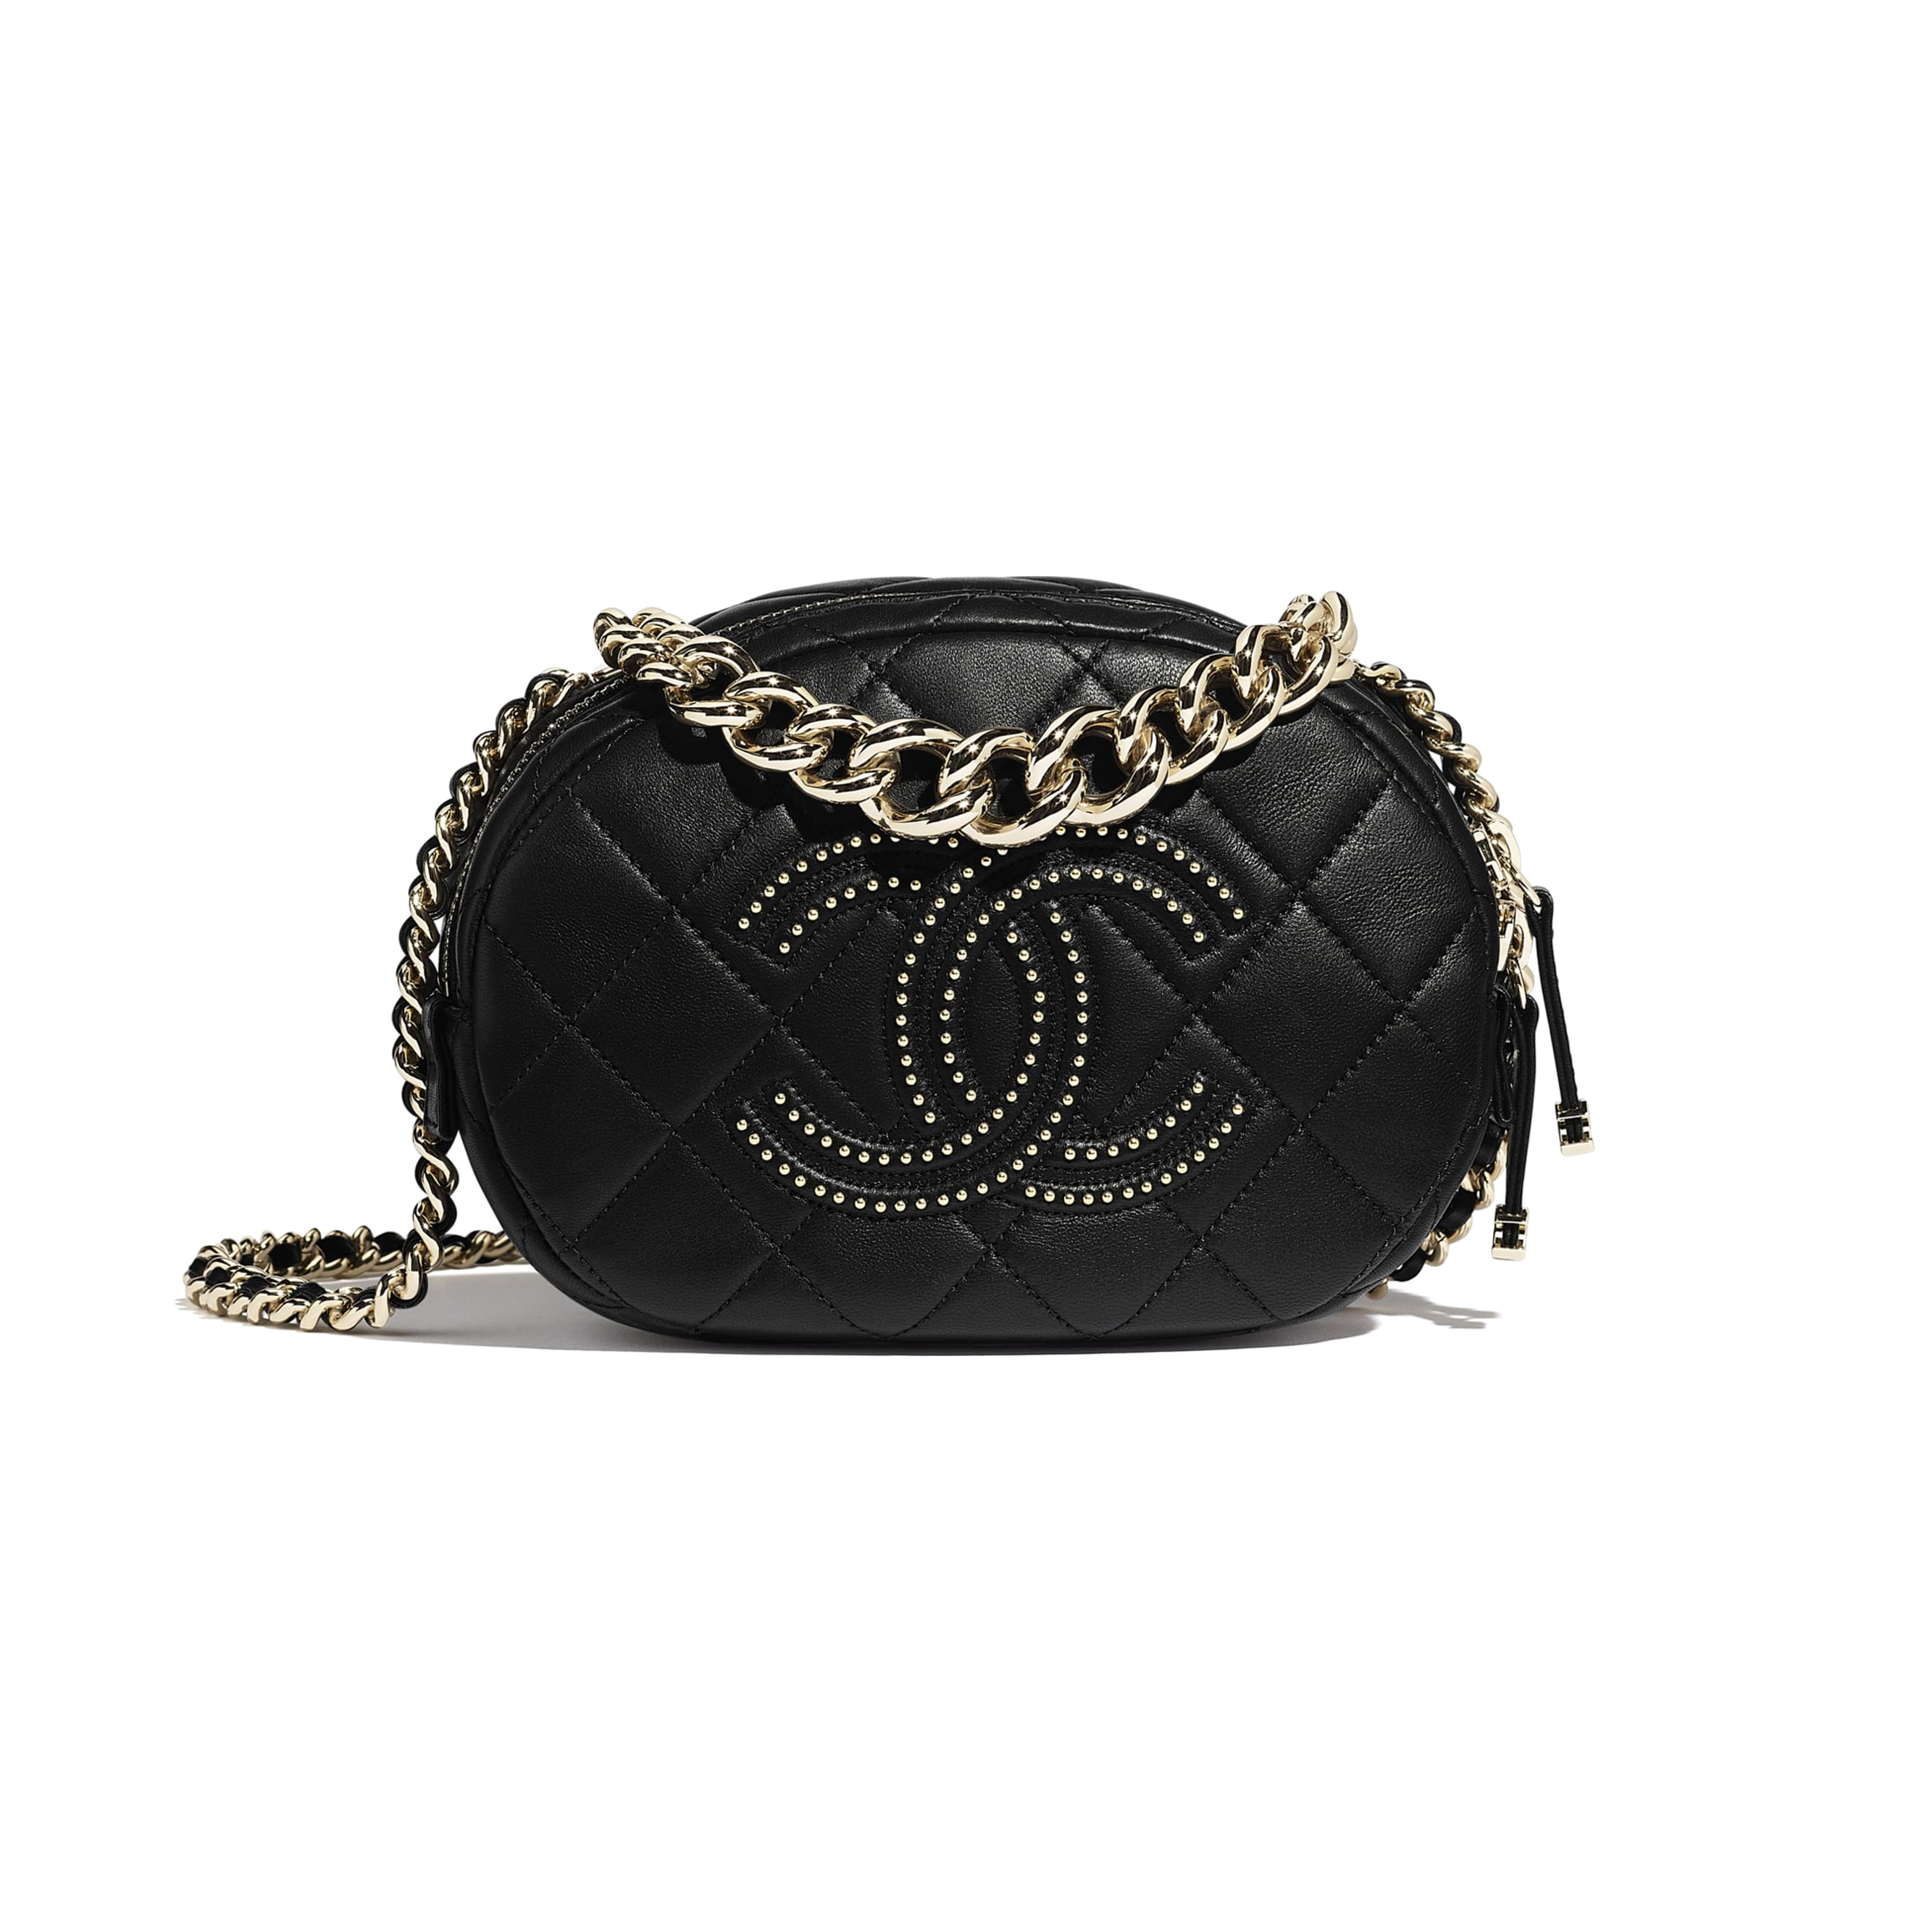 Camera Case - Black - Lambskin, Studs & Gold-Tone Metal - CHANEL - Default view - see standard sized version